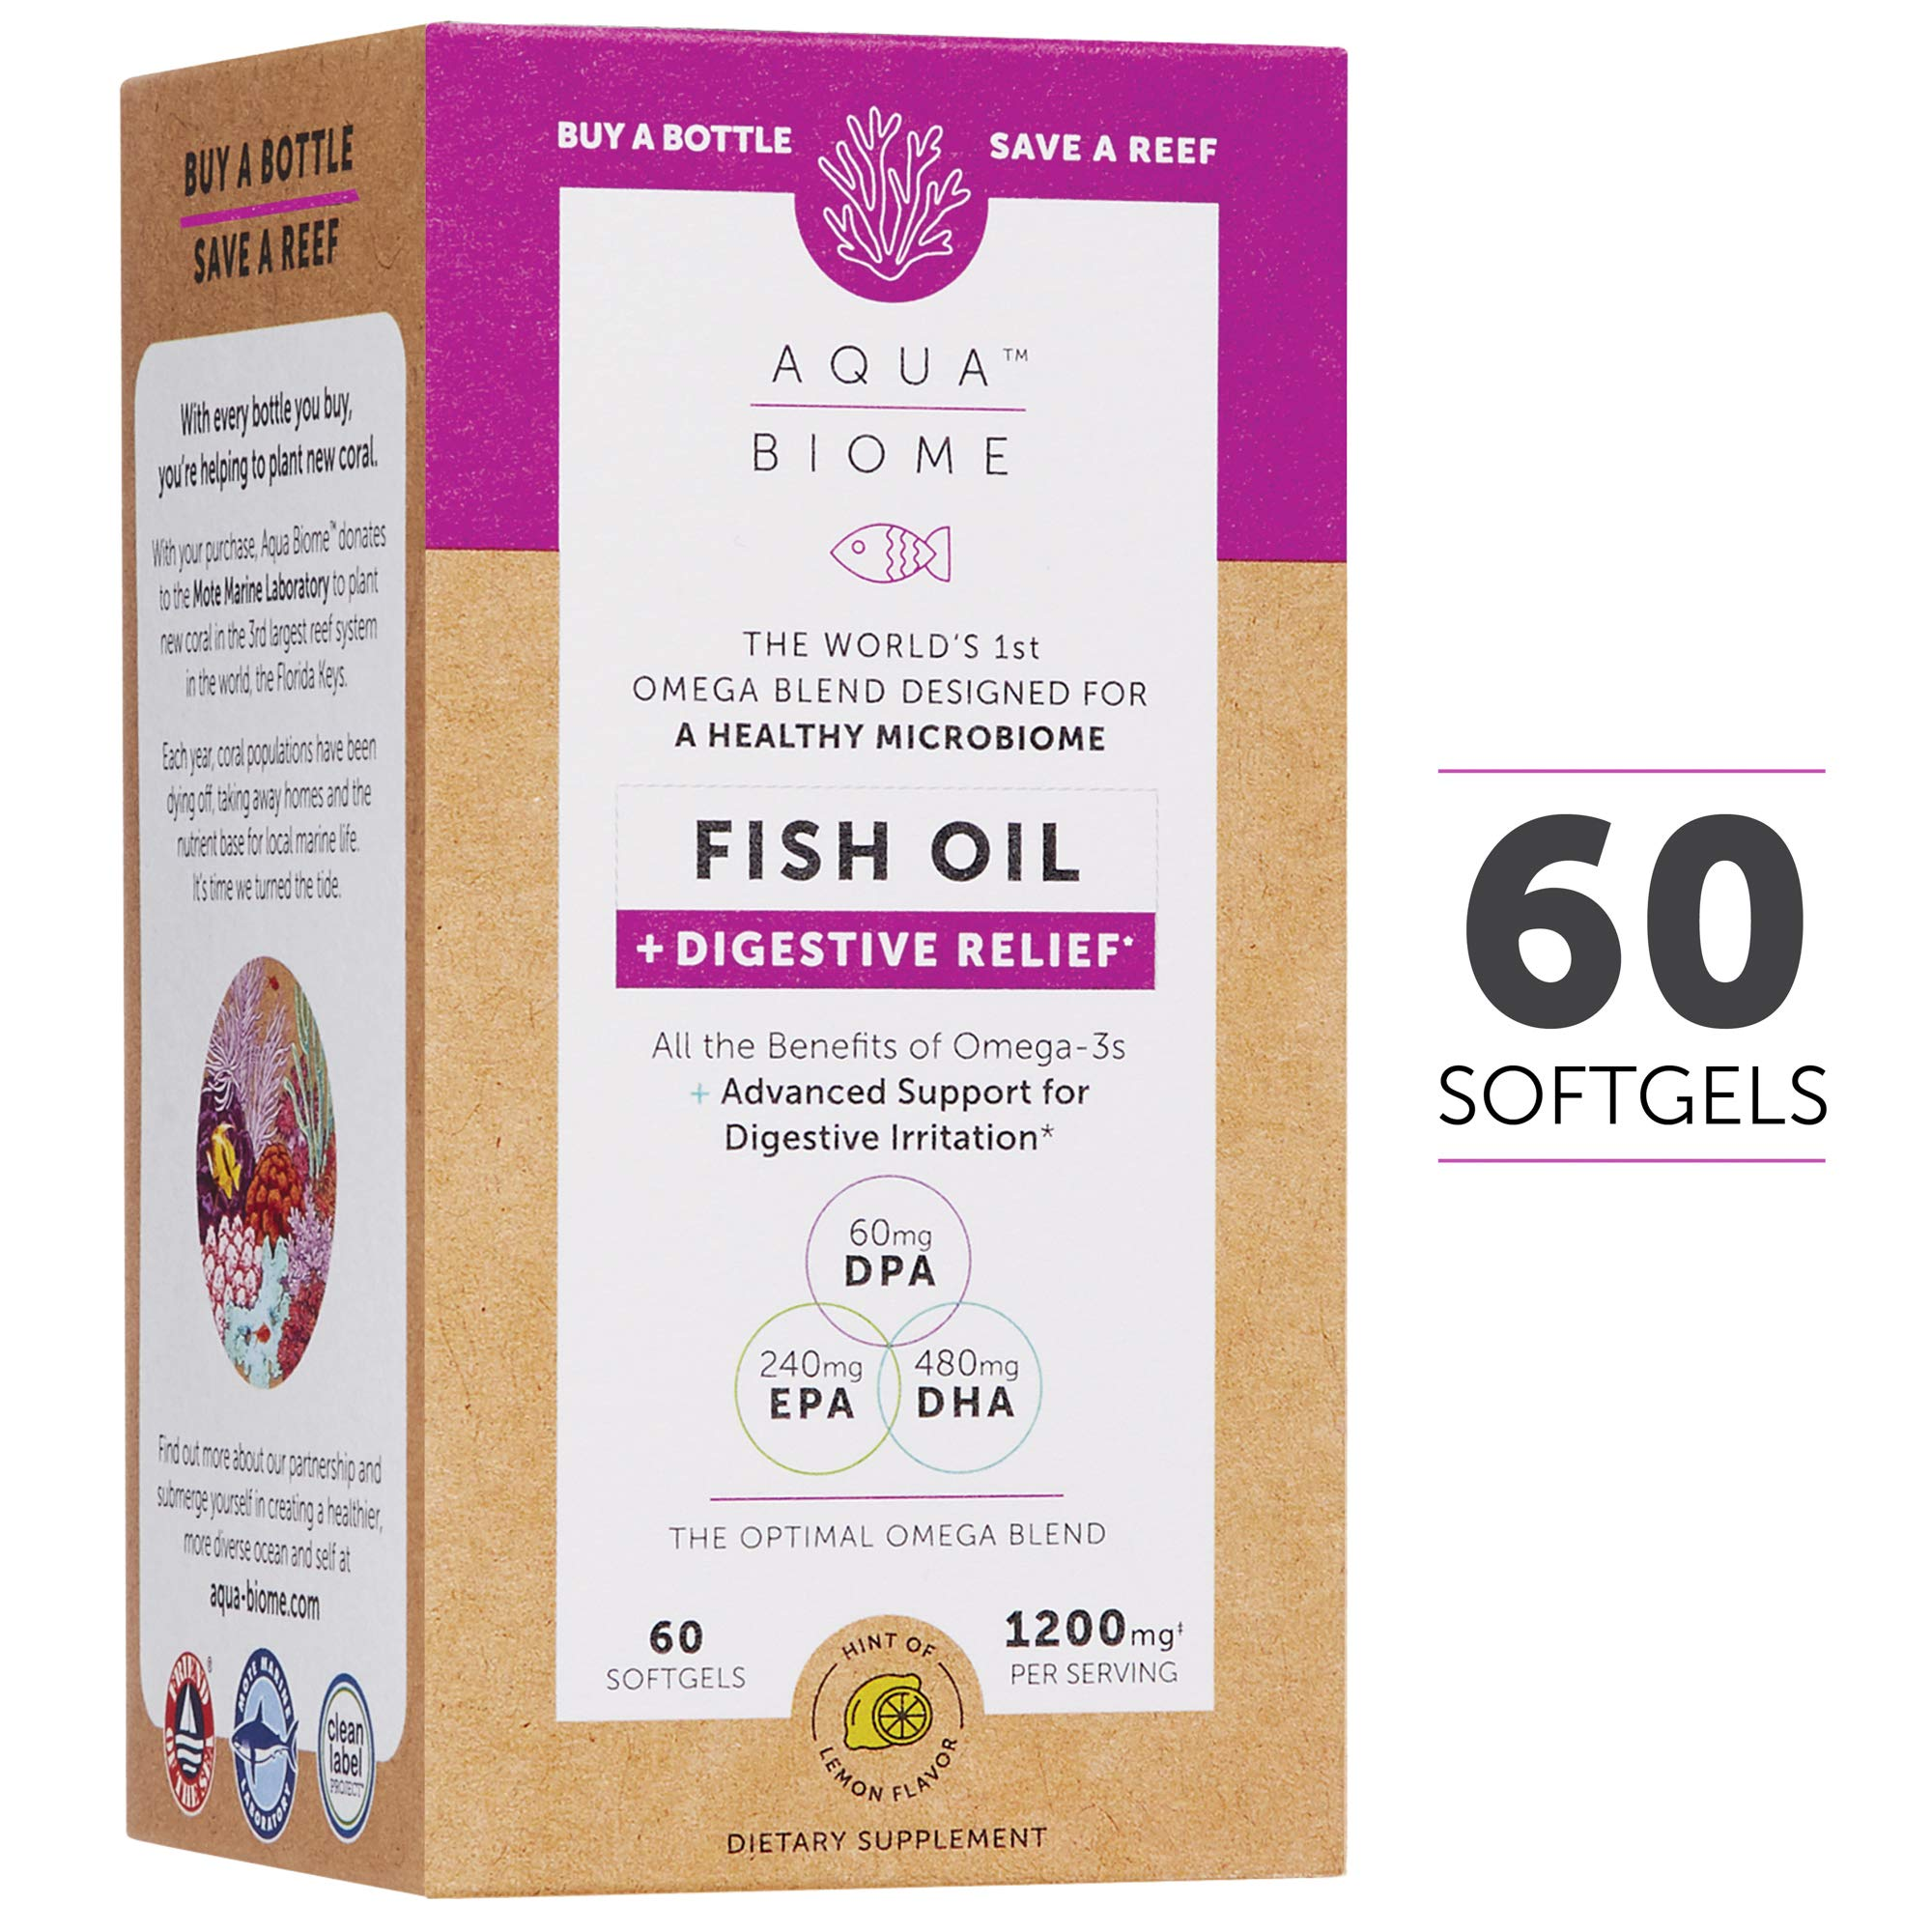 Aqua Biome by Enzymedica, Fish Oil + Digestive Relief, Complete Omega 3 Supplement, Gluten Free and Non-GMO, 60 softgels (30 servings) by Enzymedica